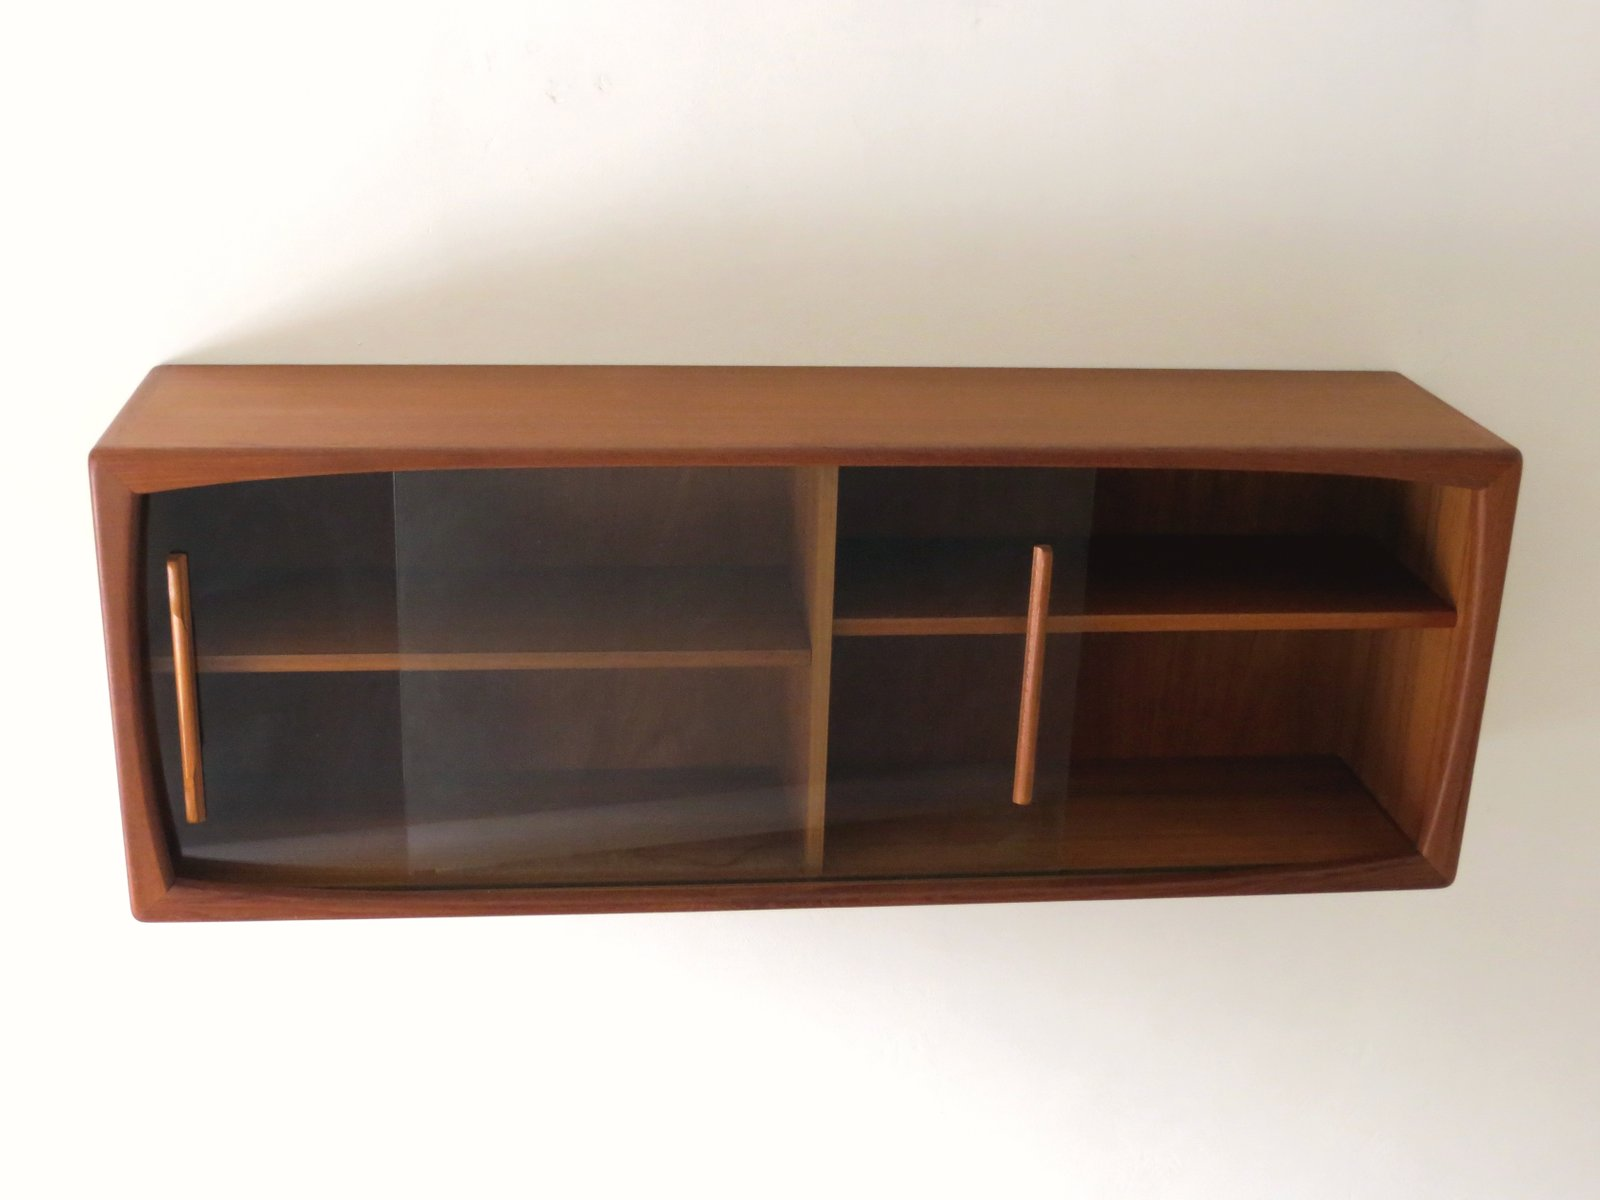 mid century wandregal mit schiebet ren aus glas von dyrlund 1960er bei pamono kaufen. Black Bedroom Furniture Sets. Home Design Ideas